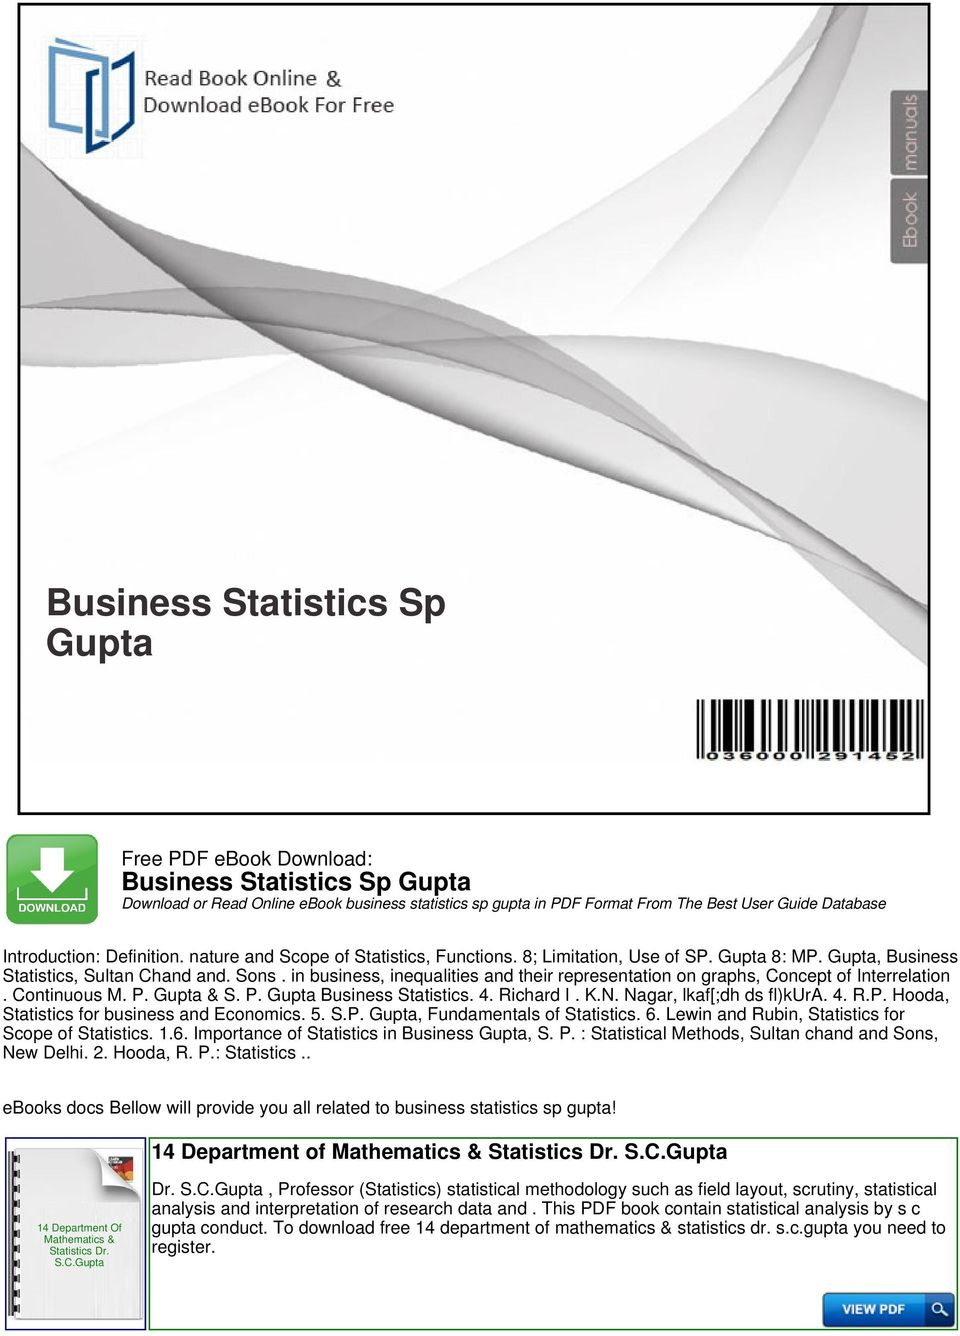 Business statistics sp gupta pdf in business inequalities and their representation on graphs concept of interrelation continuous m p fandeluxe Gallery